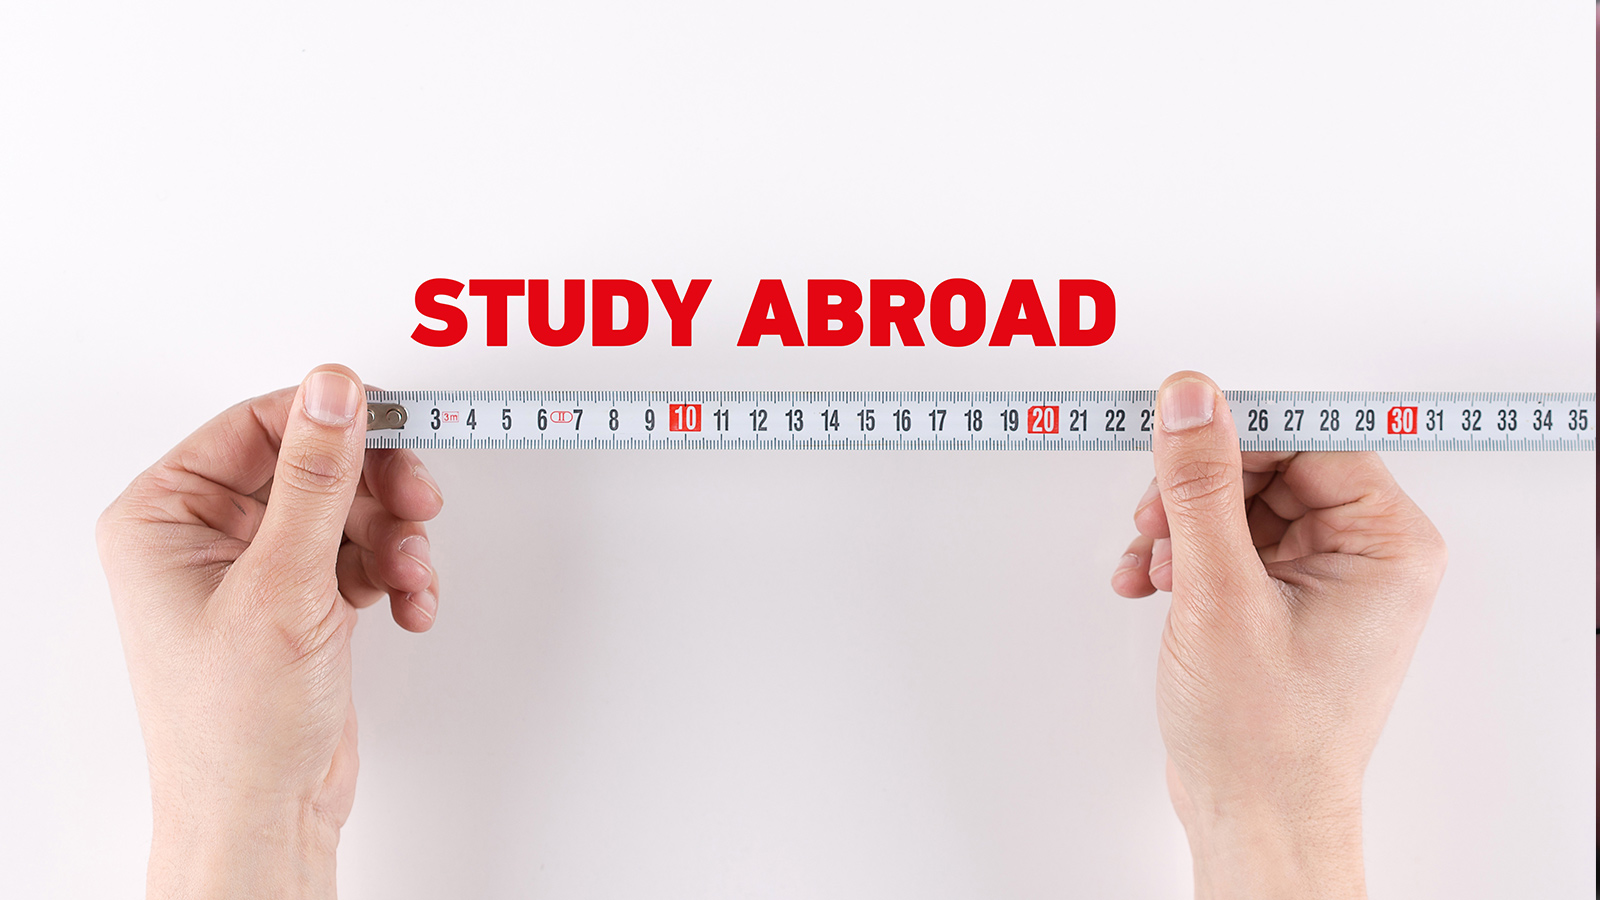 Looking for Higher Education Out of The Country – 4 Key Reasons to Study Aboard in South Korea